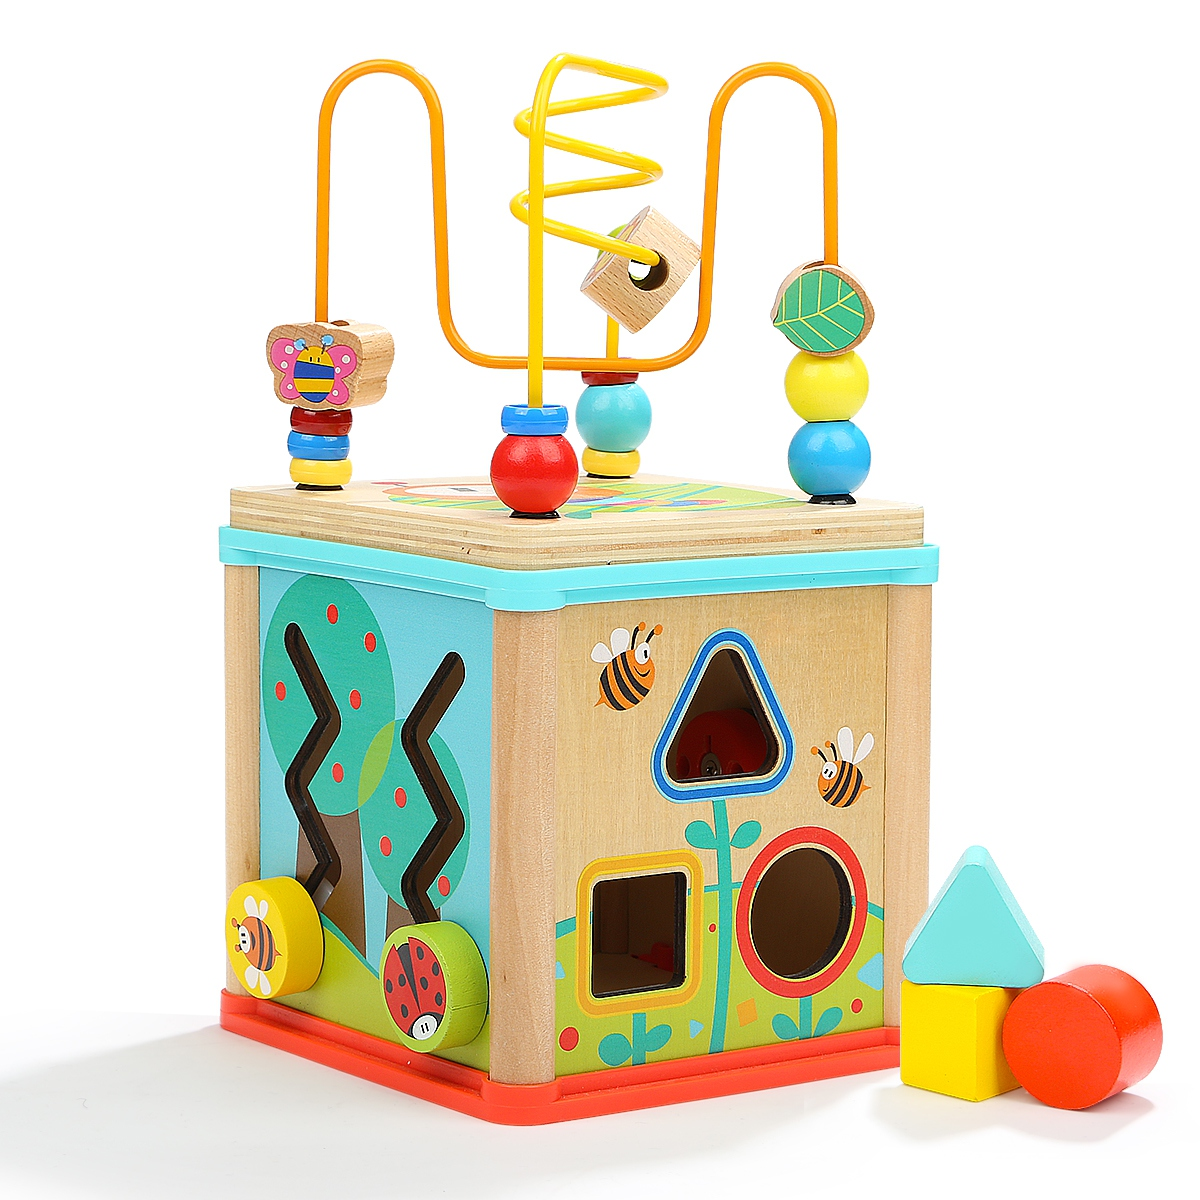 1 Pcs Wooden Toys Baby Learning Early Education Wooden Maze Multi-function Box Round Bead Toys For Kids Children Gifts